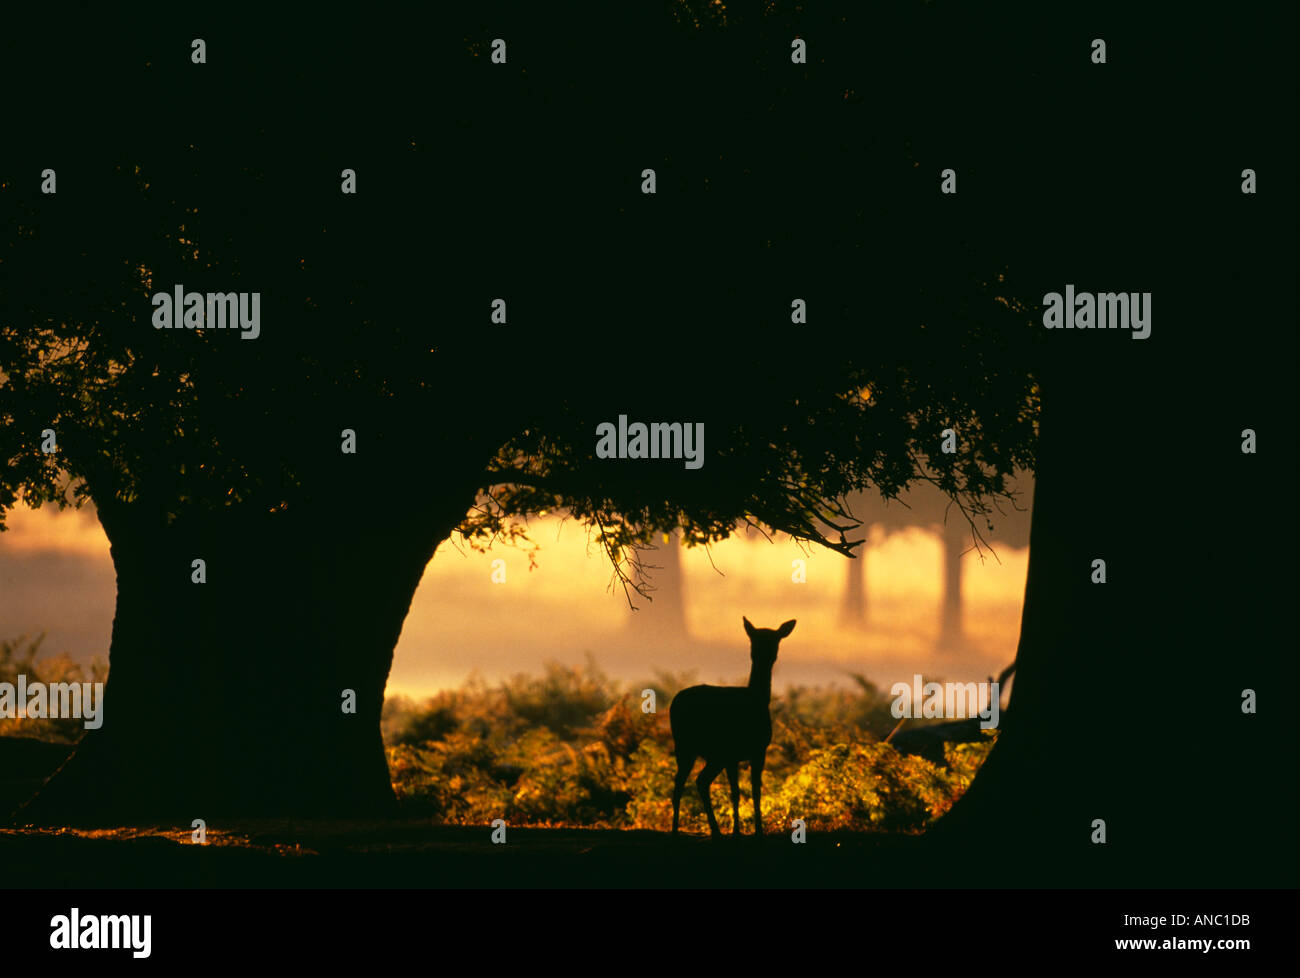 Daims Cervus dama doe à l'aube nouvelle Forêt Hampshire UK automne Photo Stock